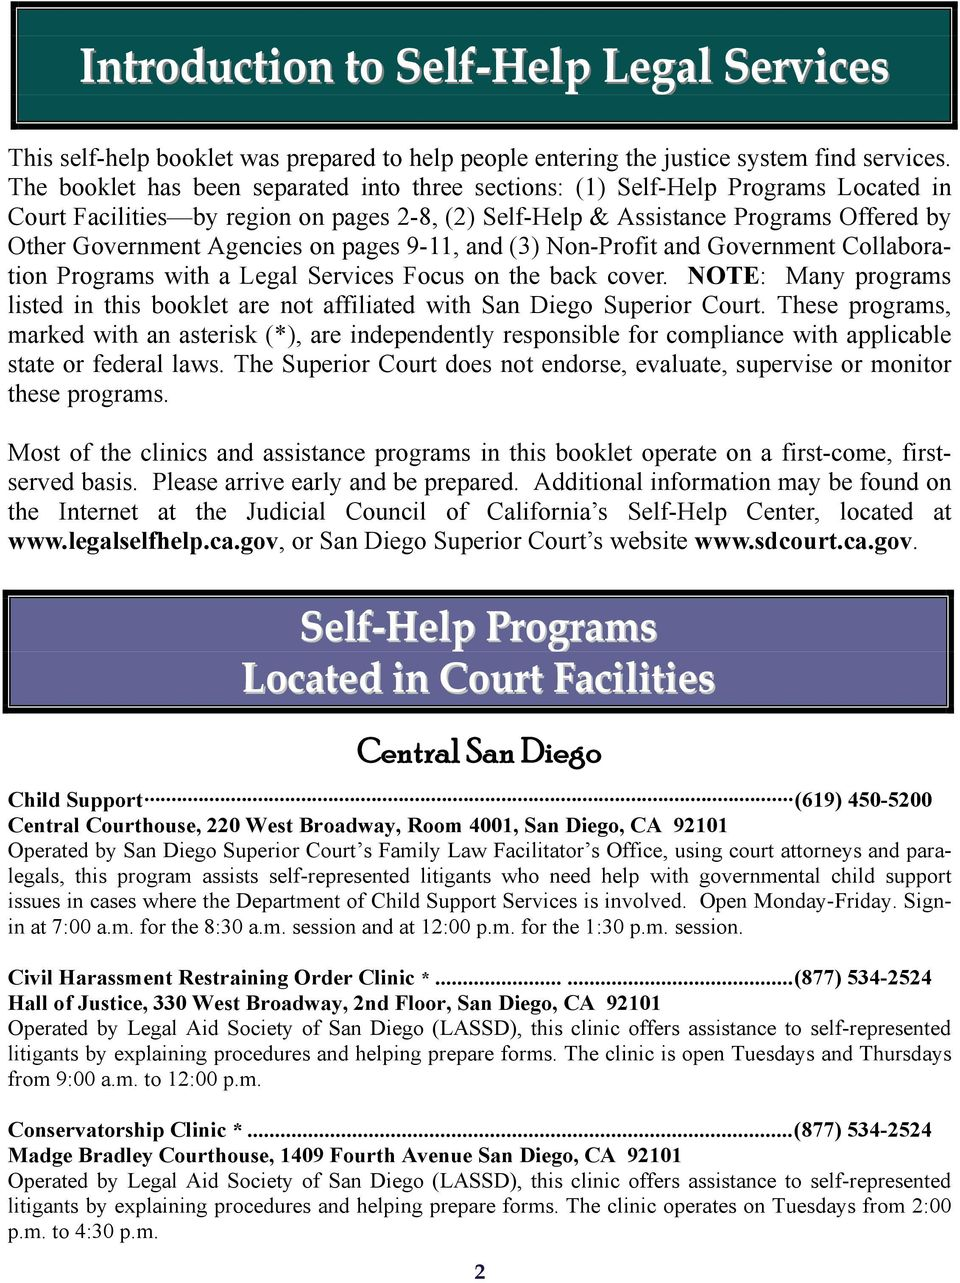 on pages 9-11, and (3) Non-Profit and Government Collaboration Programs with a Legal Services Focus on the back cover.